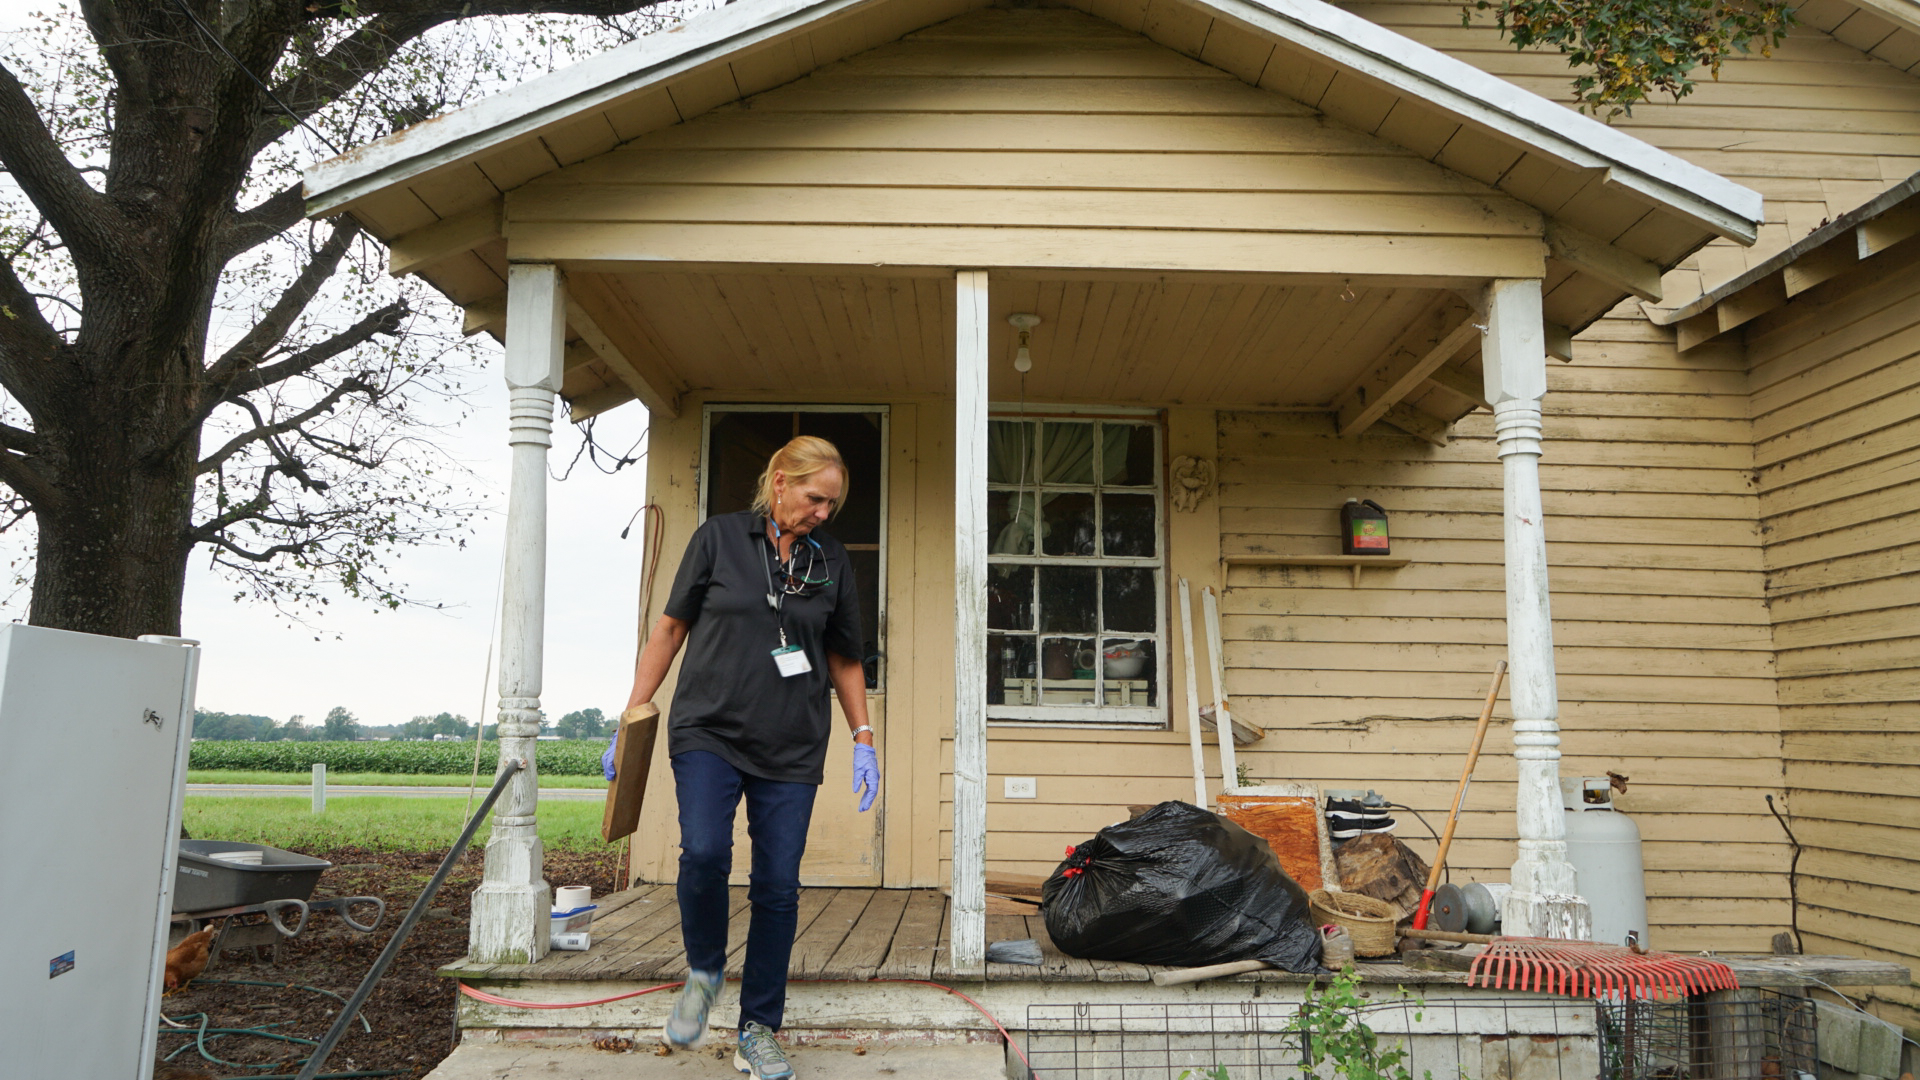 Nurse Gena Byrd, a clinician for local farmworkers at Greene County Health Care, at the home of an elderly patient outside Snow Hill, North Carolina. The home had recently flooded as a result of Hurricane Florence. Byrd and other staff and volunteers made repairs to make the home safer. (Lara Cooper/Direct Relief)